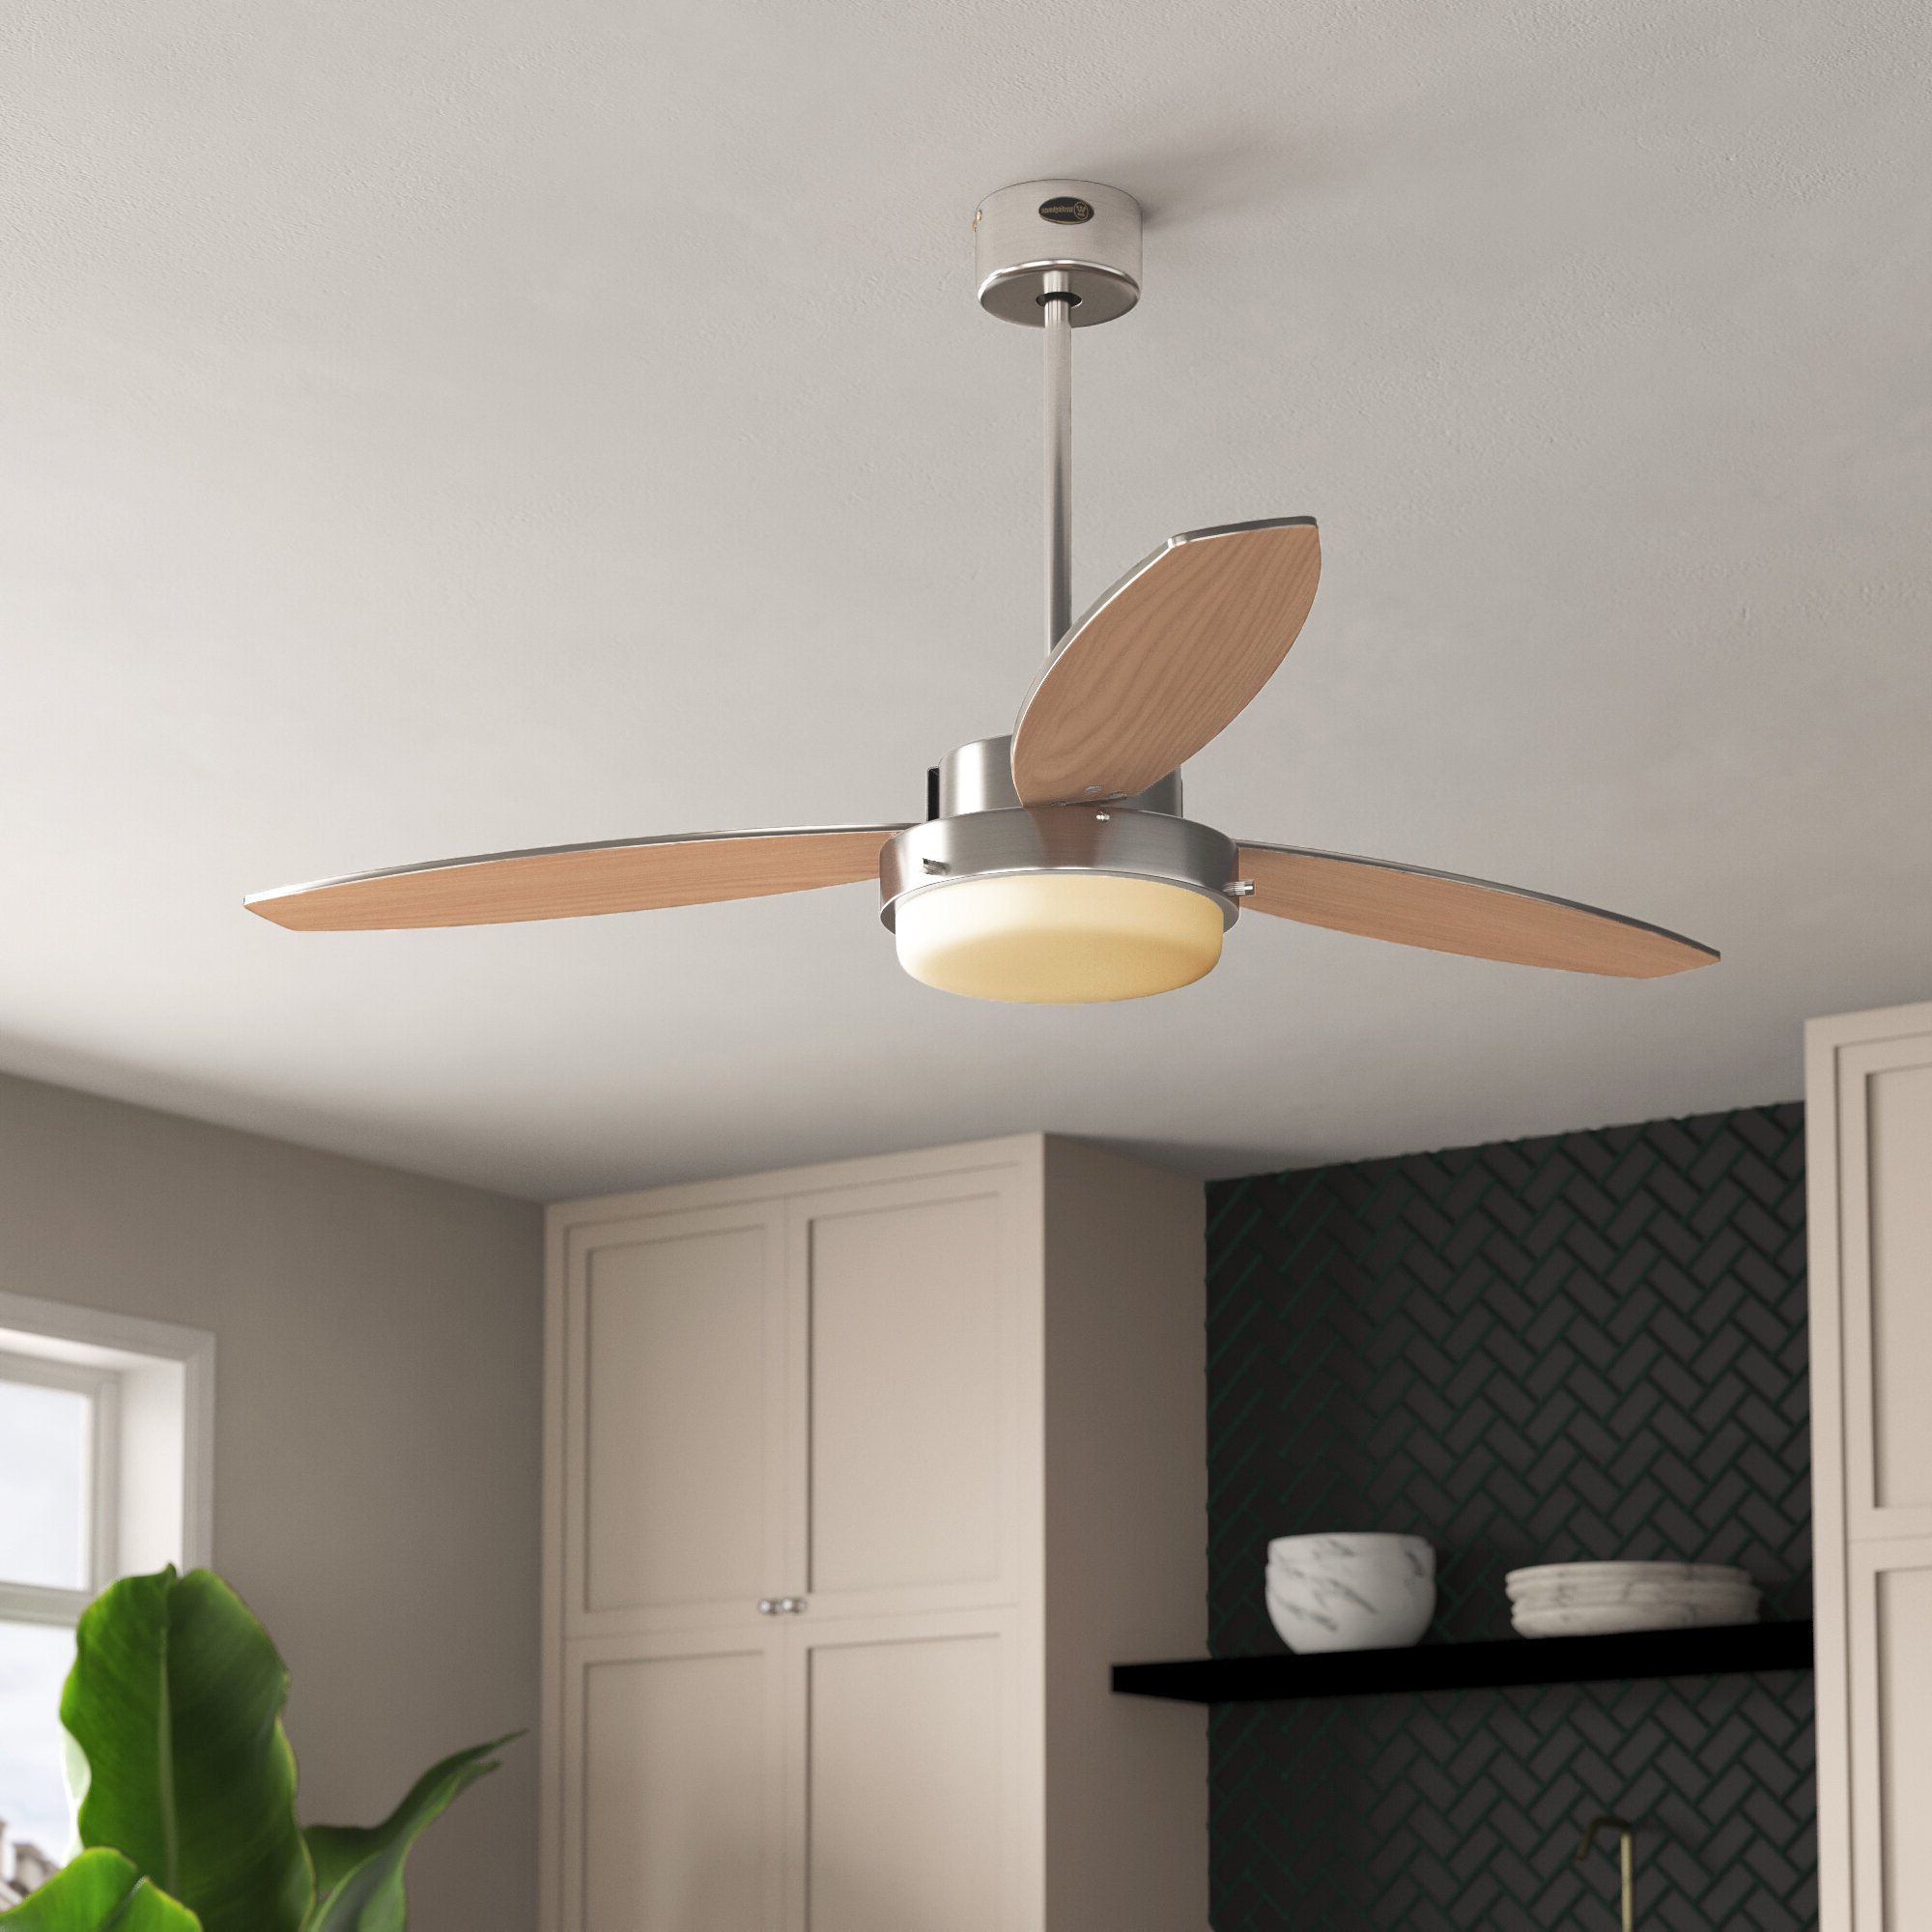 """52"""" Corsa Two Light Reversible Plywood 3 Blade Ceiling Fan, Light Kit Included Pertaining To Preferred Corsa 3 Blade Ceiling Fans (View 4 of 20)"""